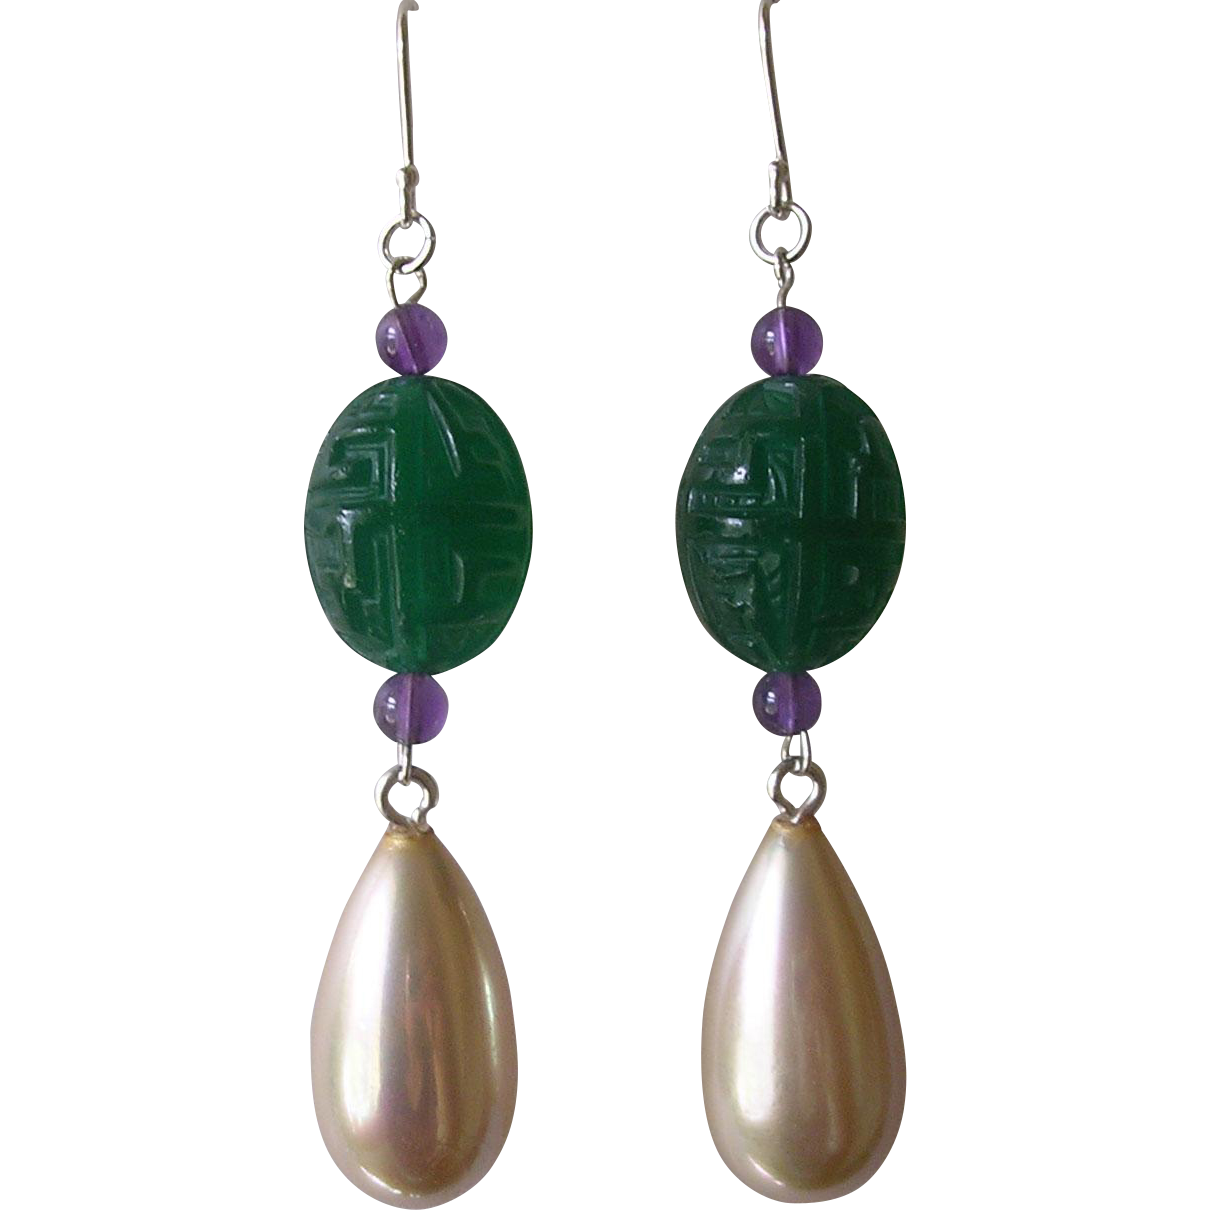 Imitation Carved Green Onyx Glass Amethyst & Imitation Pearl Pendant Earrings